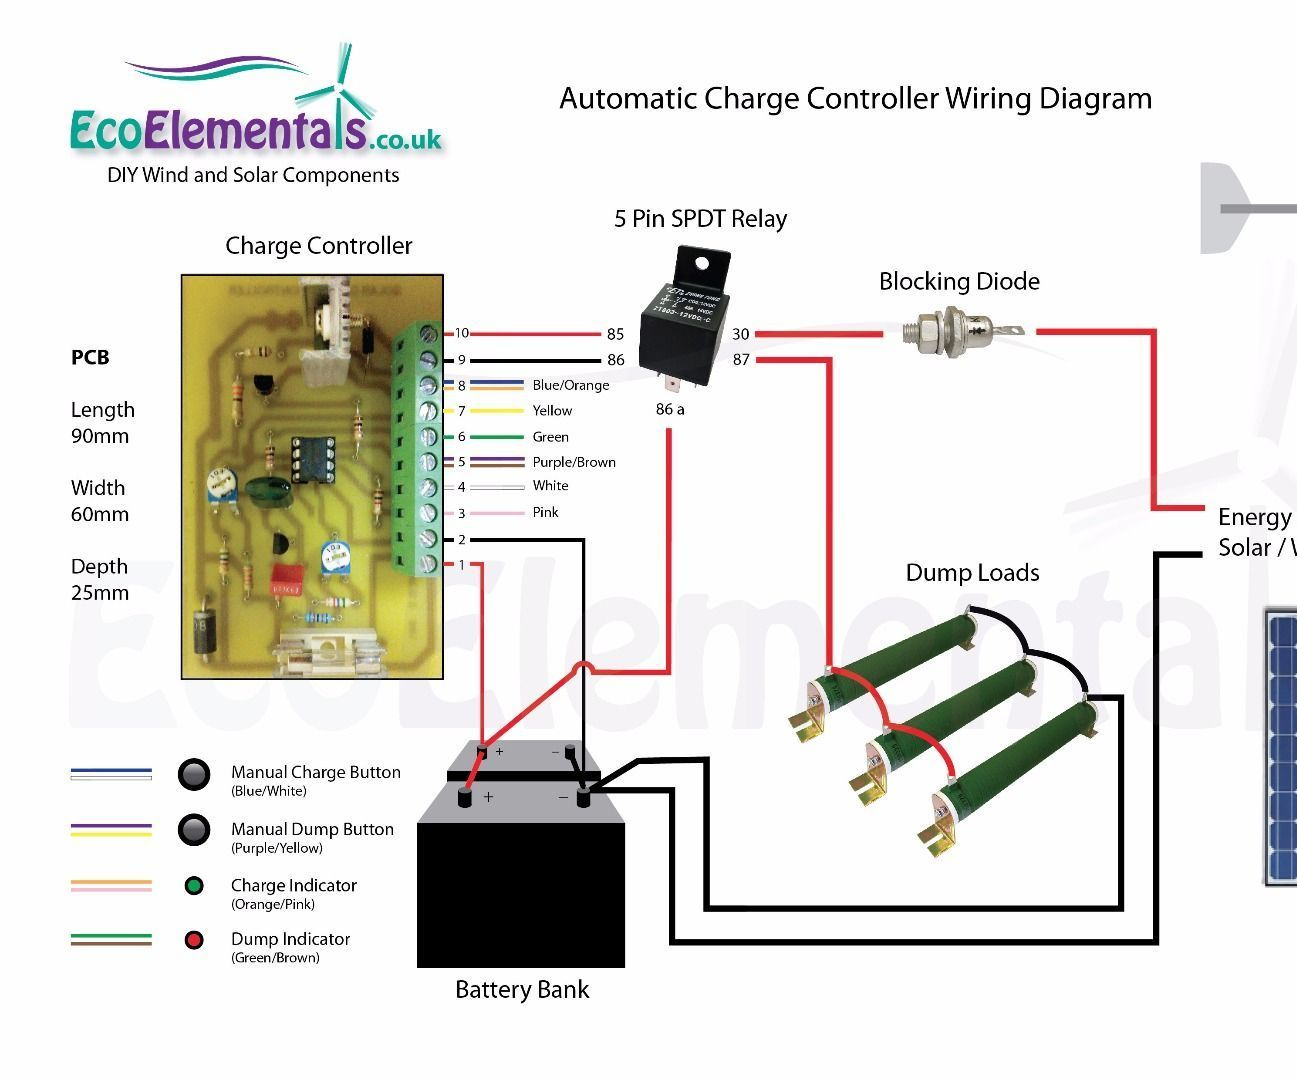 hight resolution of charge controller wiring diagram for diy wind turbine or solar panels